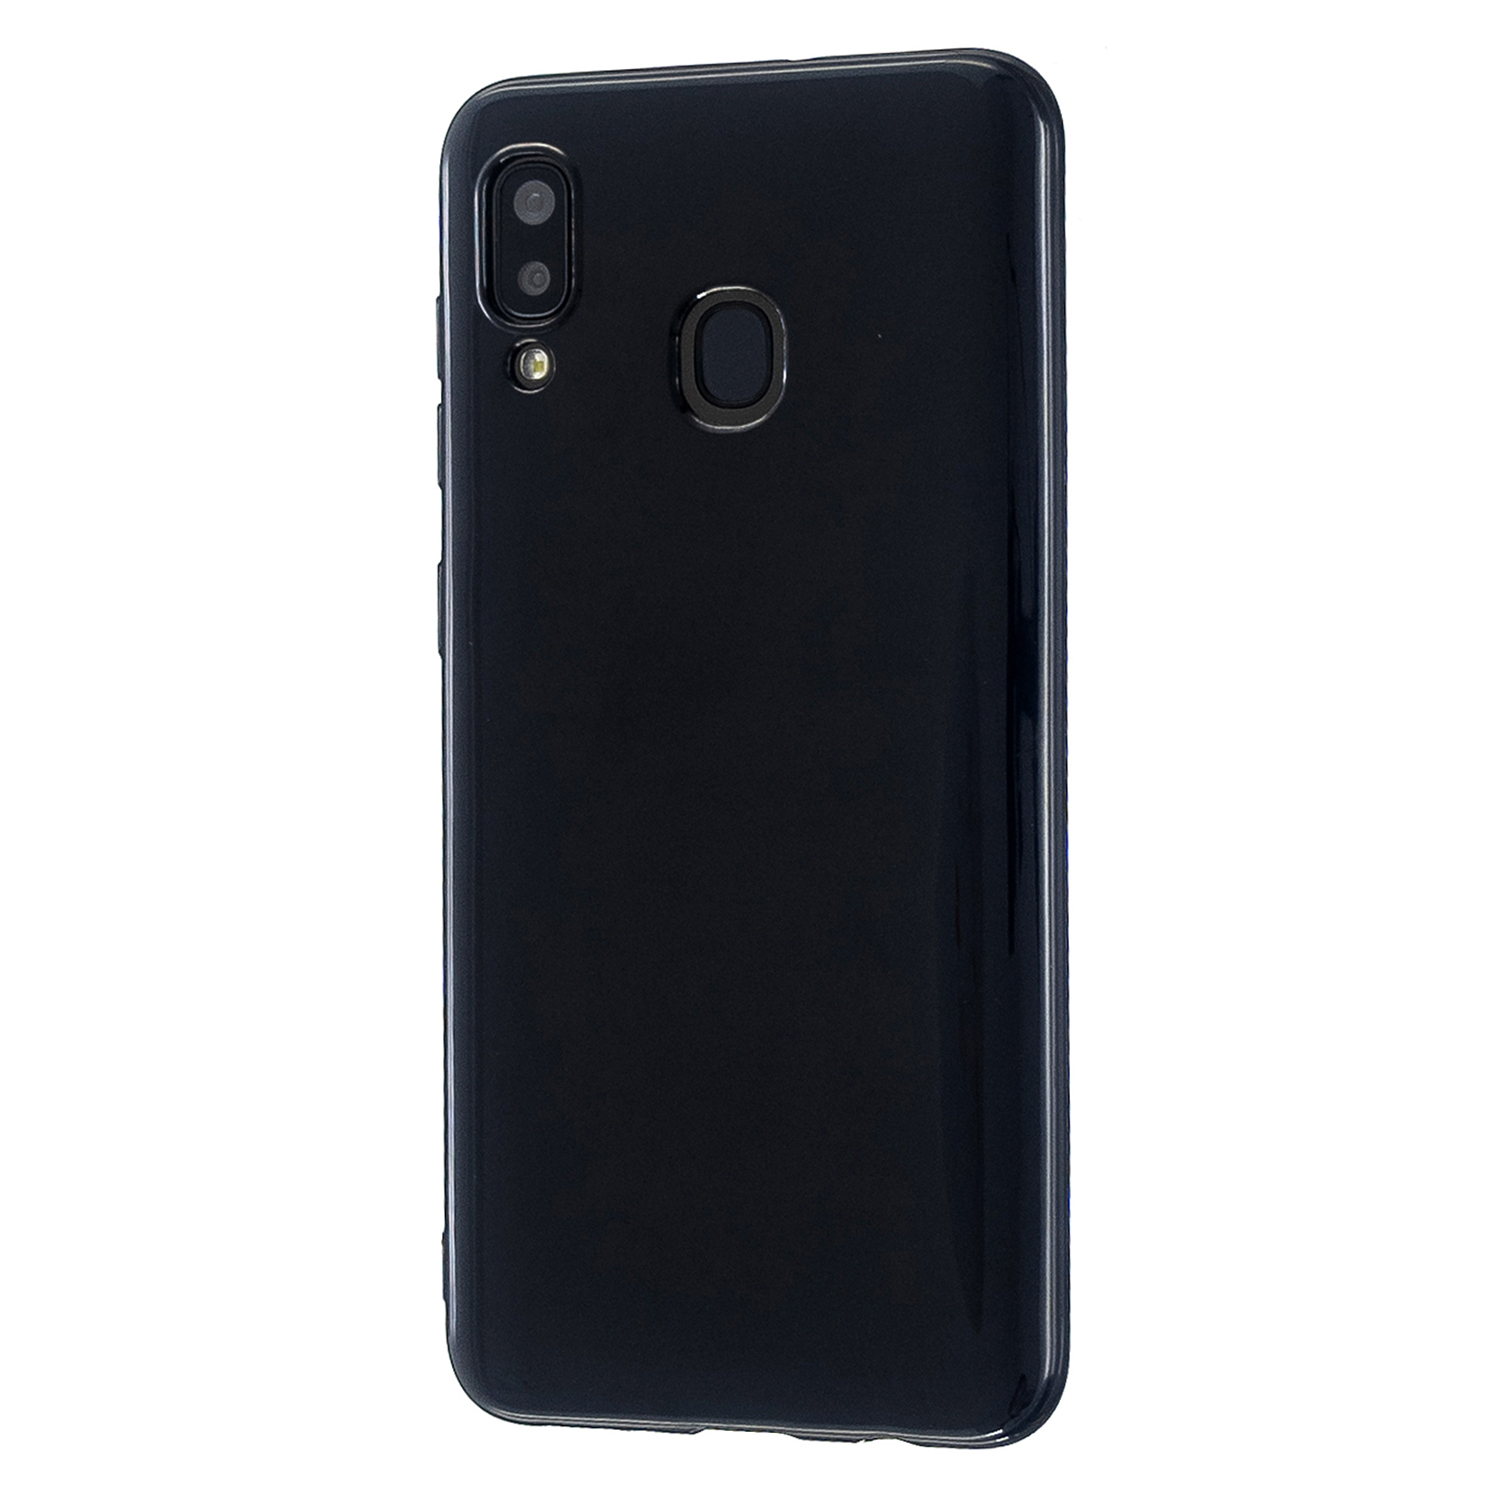 For Samsung A10/A20/A30/A50 Phone Case Soft TPU Overal Protection Precise Cutouts Easy to Install Cellphone Cover  Bright black